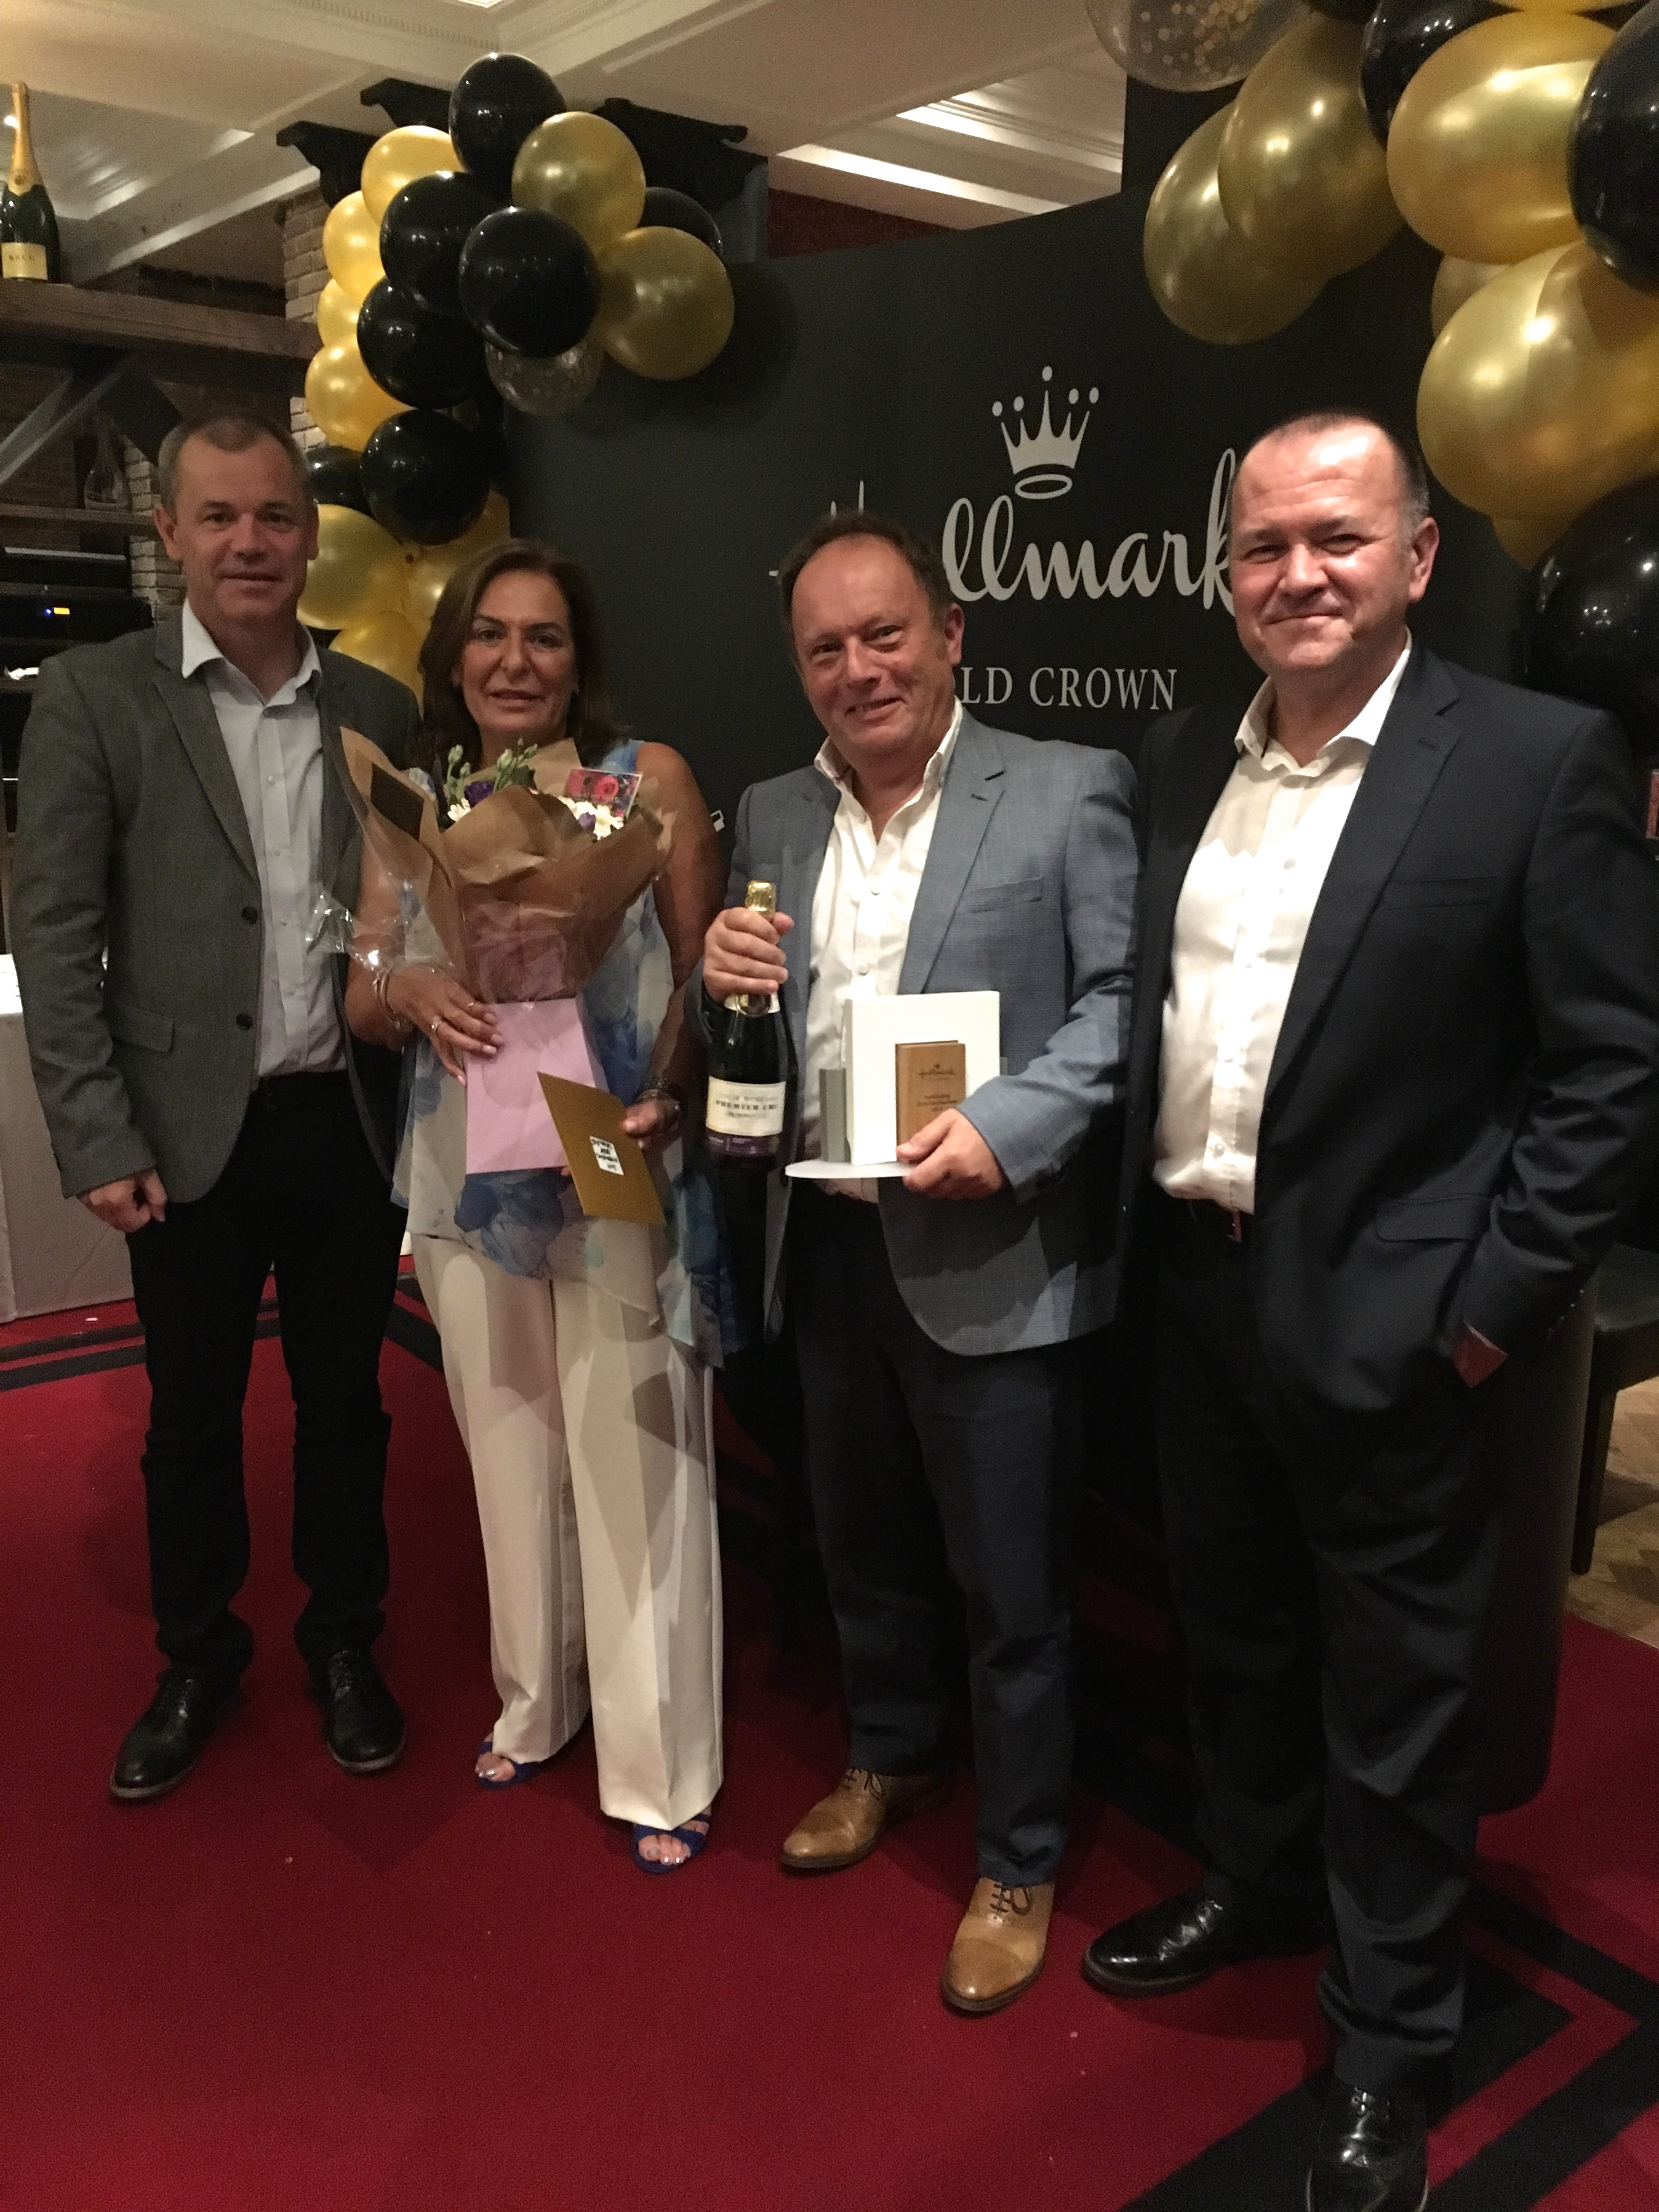 Above: QLM's (second right)Maurice Esofsky and Debbie Zoltie were presented with their Outstanding Store Development Award by Gold Crown's (right)Graeme Francis and Hallmark'sCiaran Leonard.